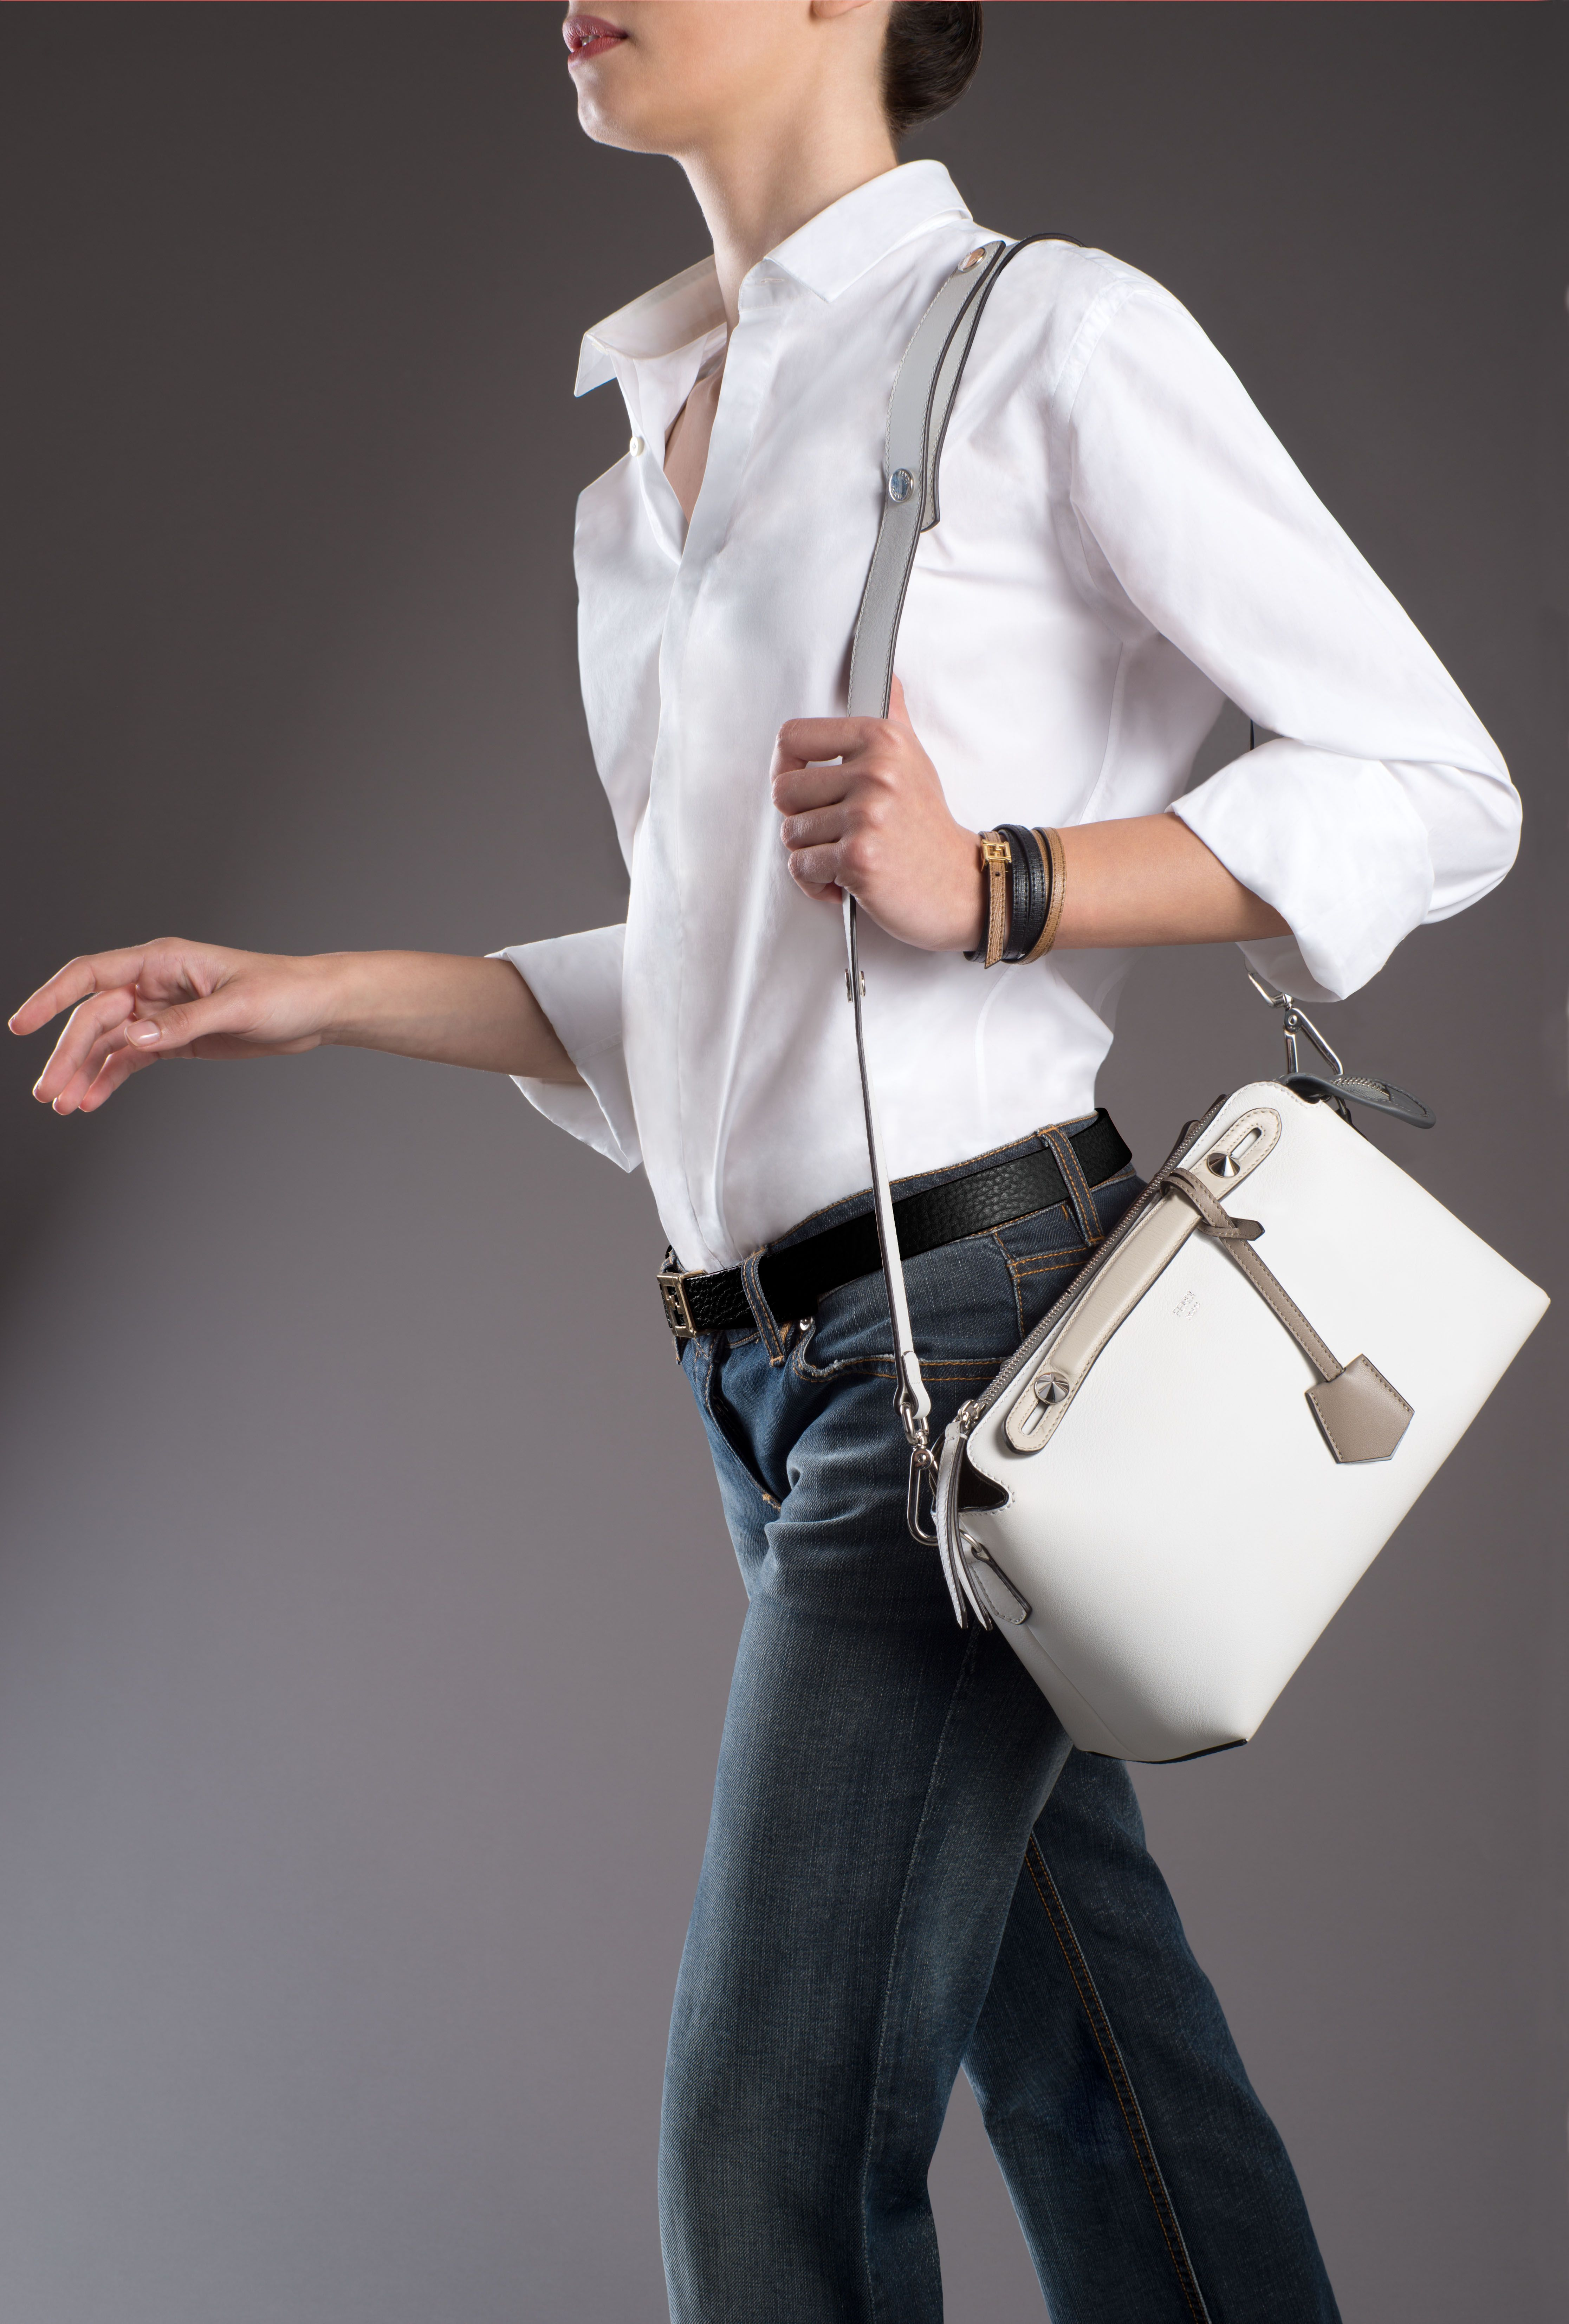 c46f1541d5 The Fendi Fall Winter 2014-15 By The Way bag worn with the long strap